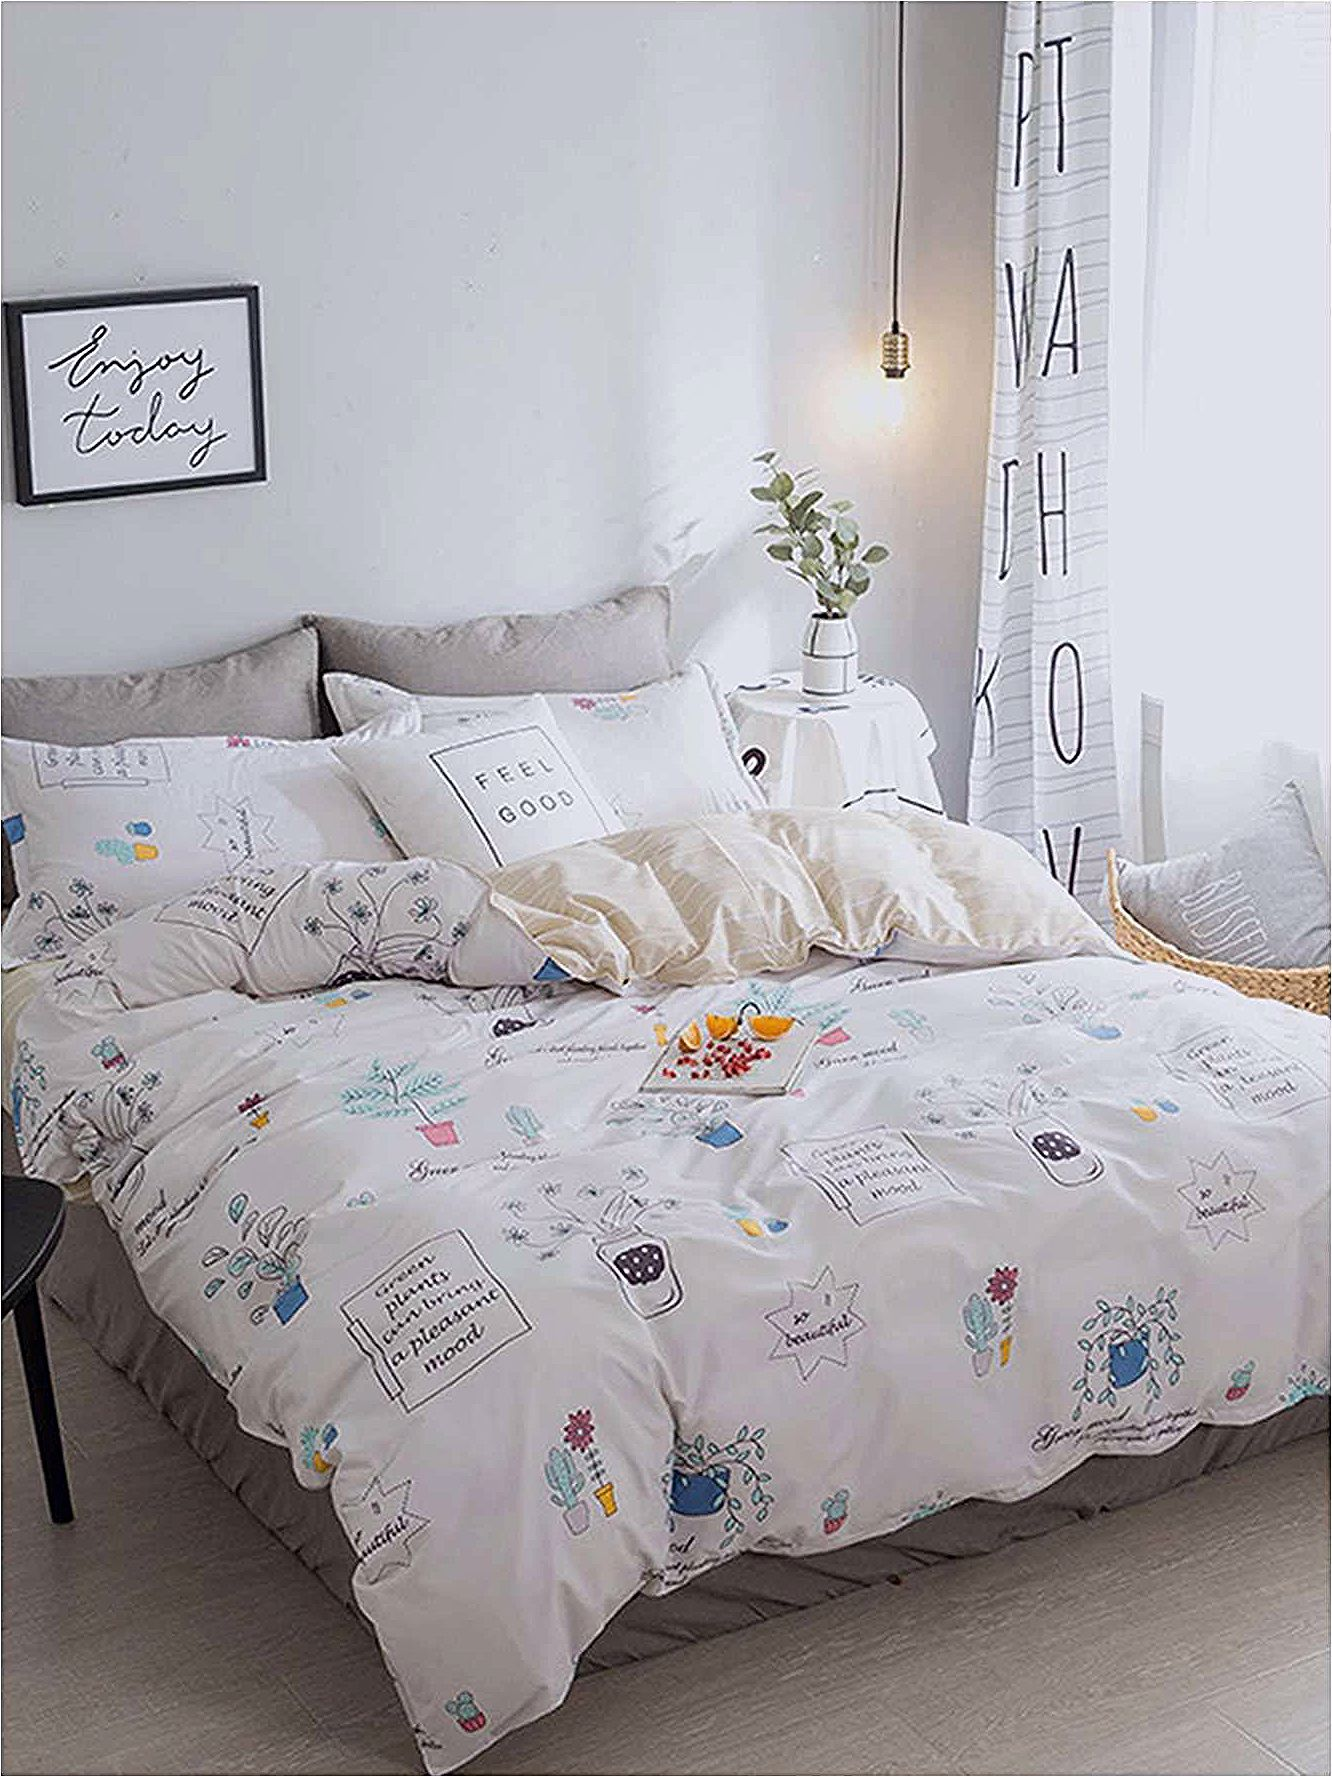 Housse De Couette Enfant In 2020 With Images Interior Design Living Room Luxury Bedding Sets Bed